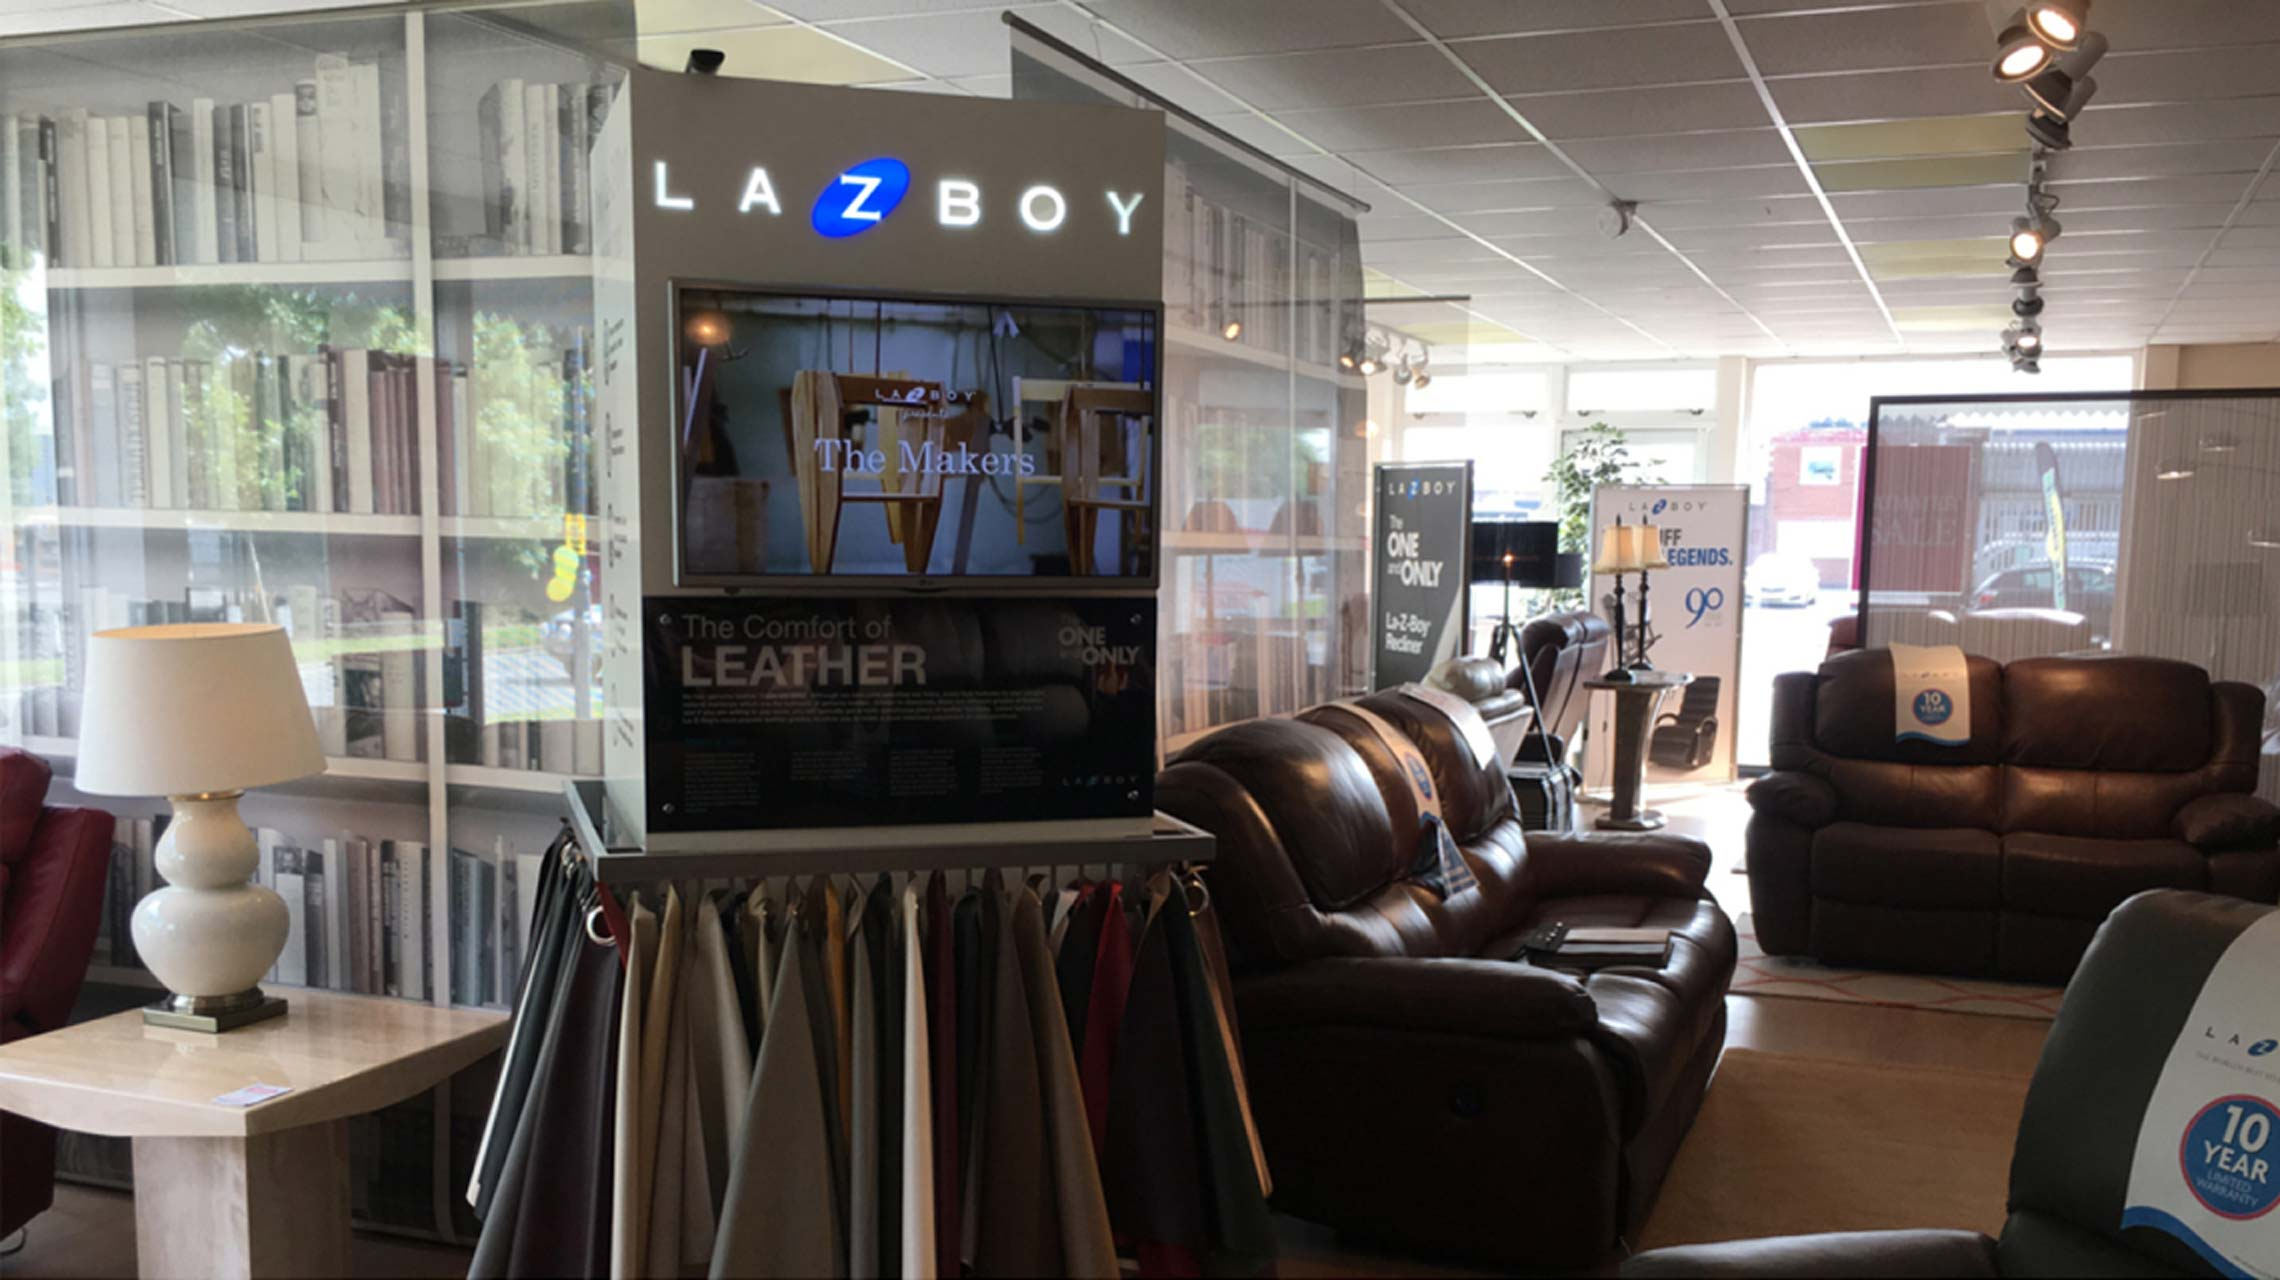 images of cirka creatives retail column for lazyboy instore